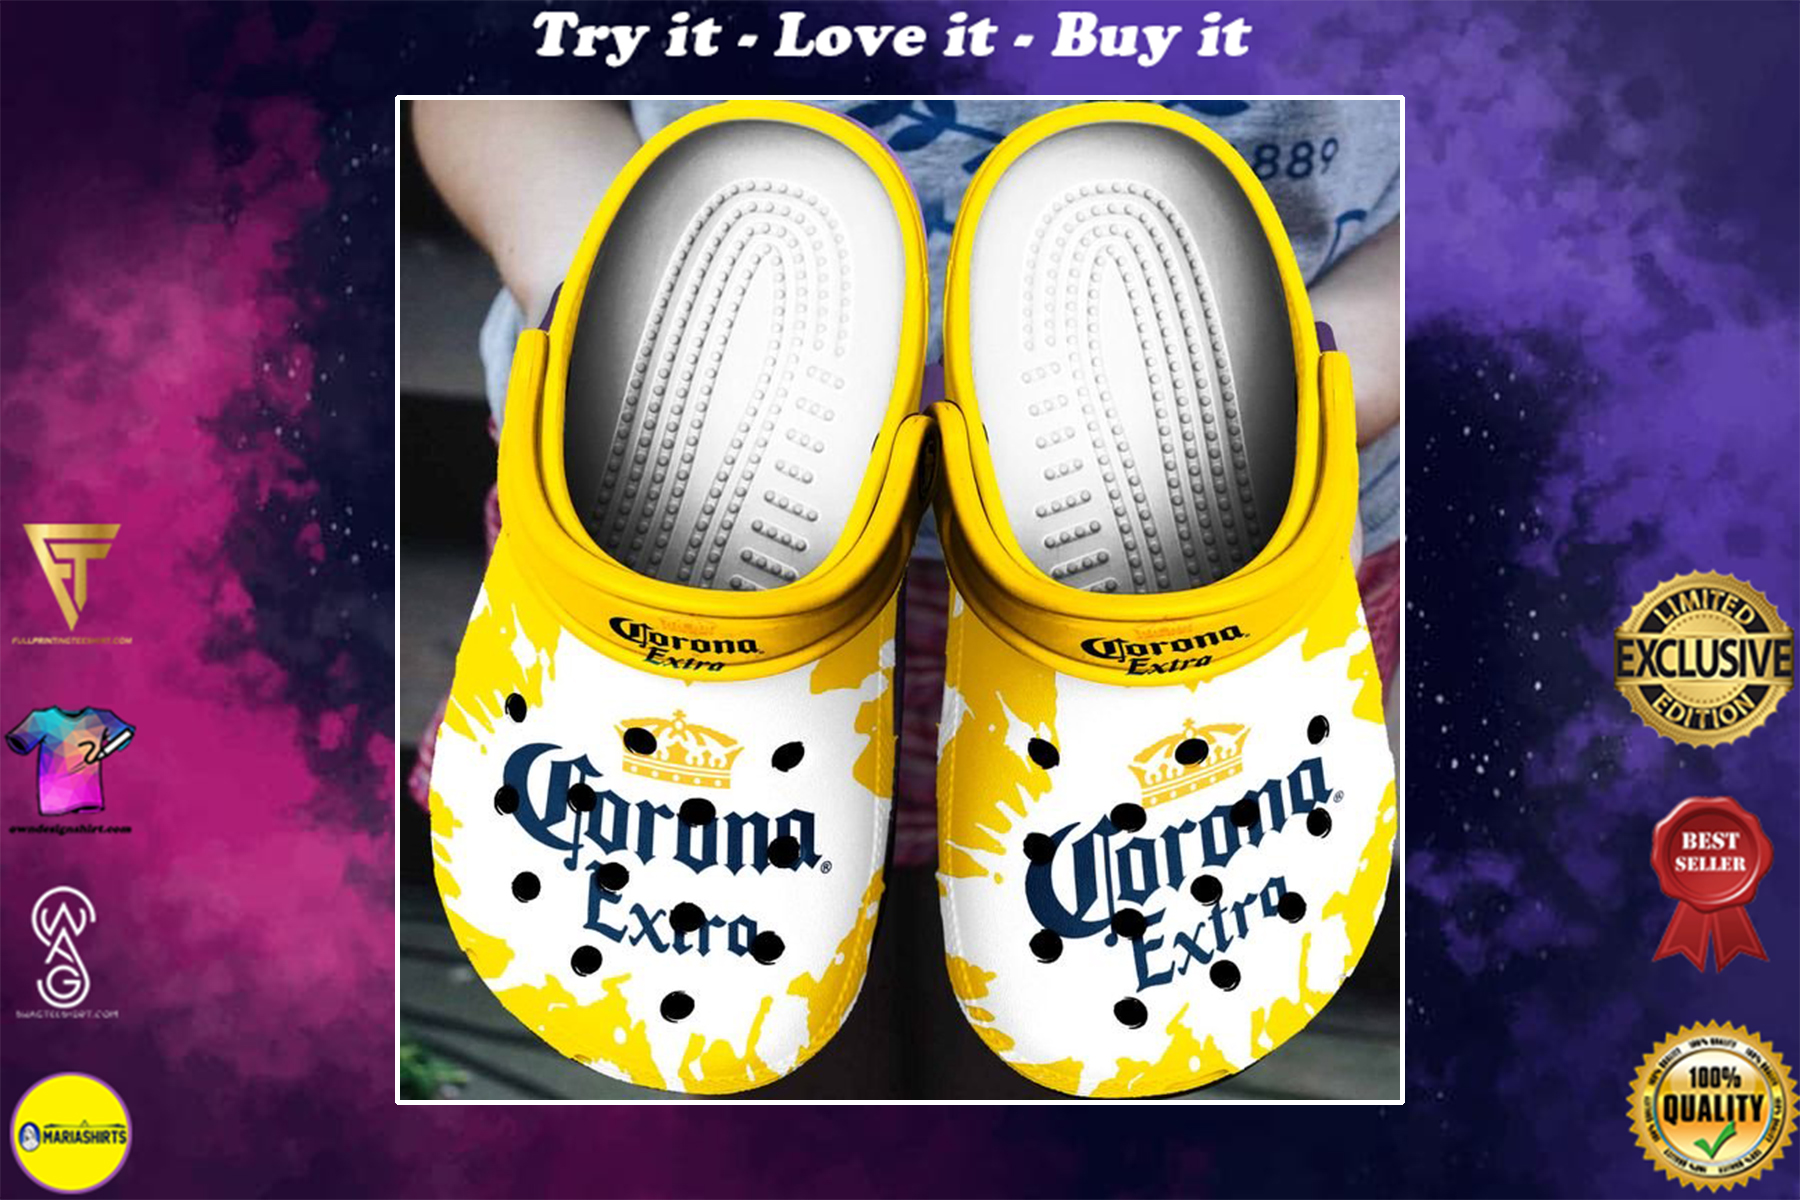 [special edition] corona extra beer crocs shoes - maria